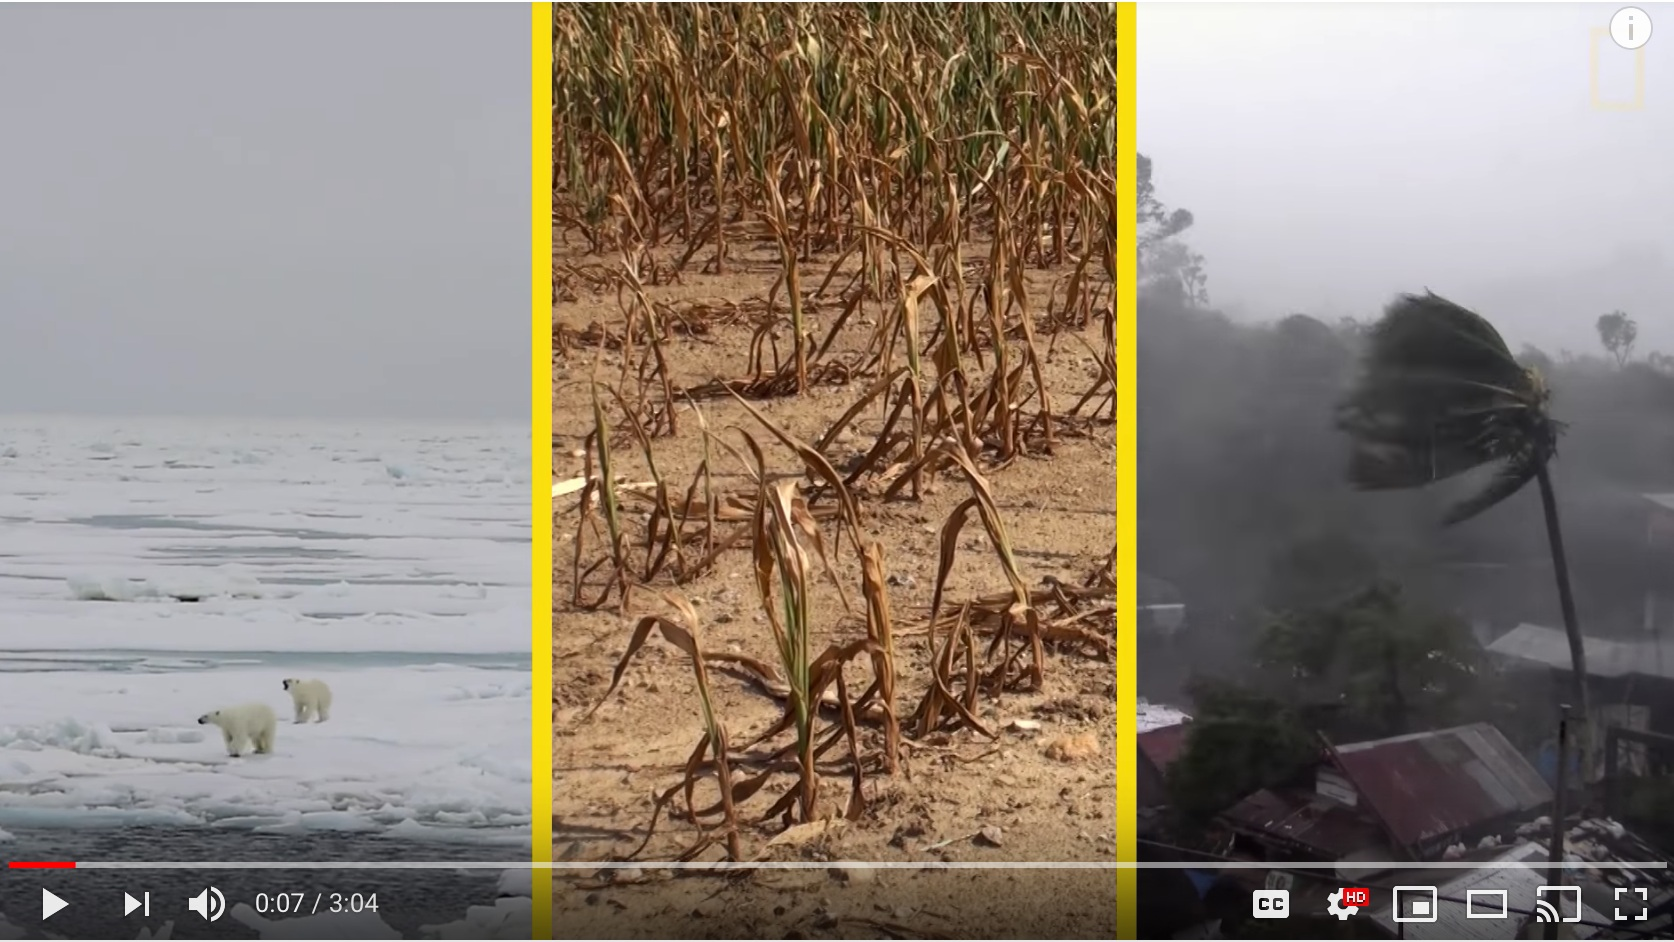 4. wait; how does climate change work? - While climate change may or may not be entirely to blame for our increased frequency of natural disasters, it is important to know how it intensifies them.